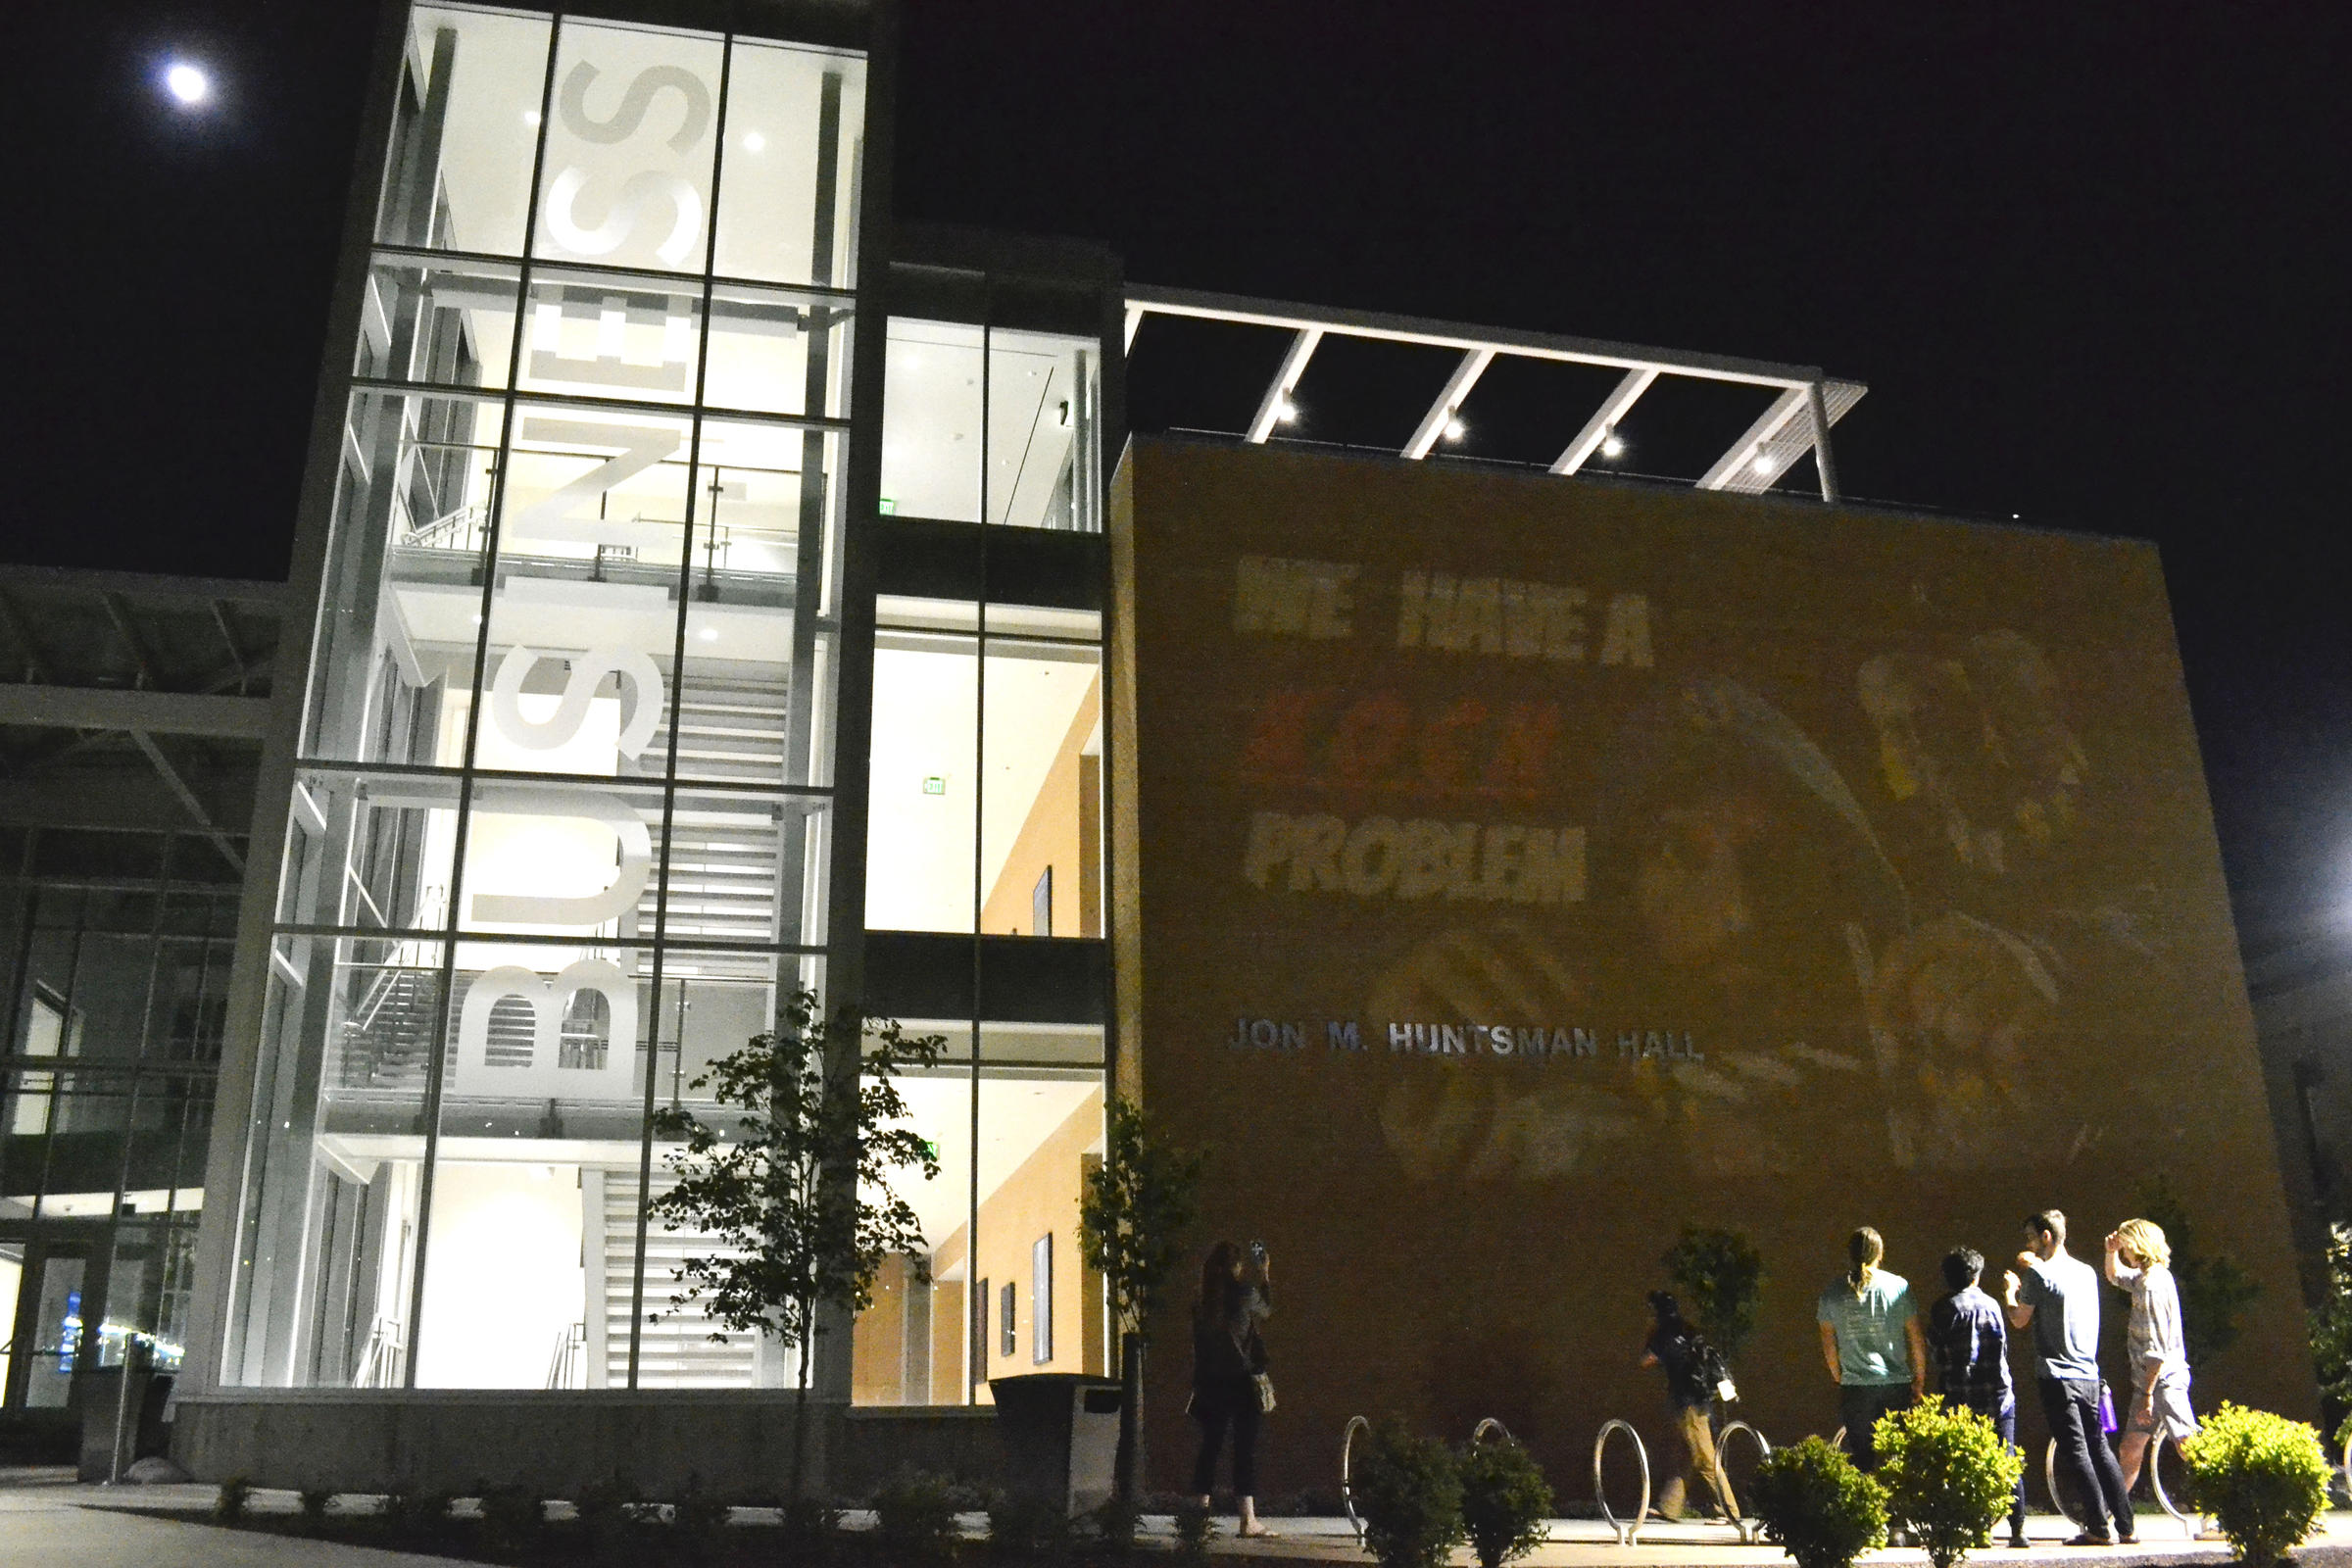 utah state university responds to student protest of koch donation